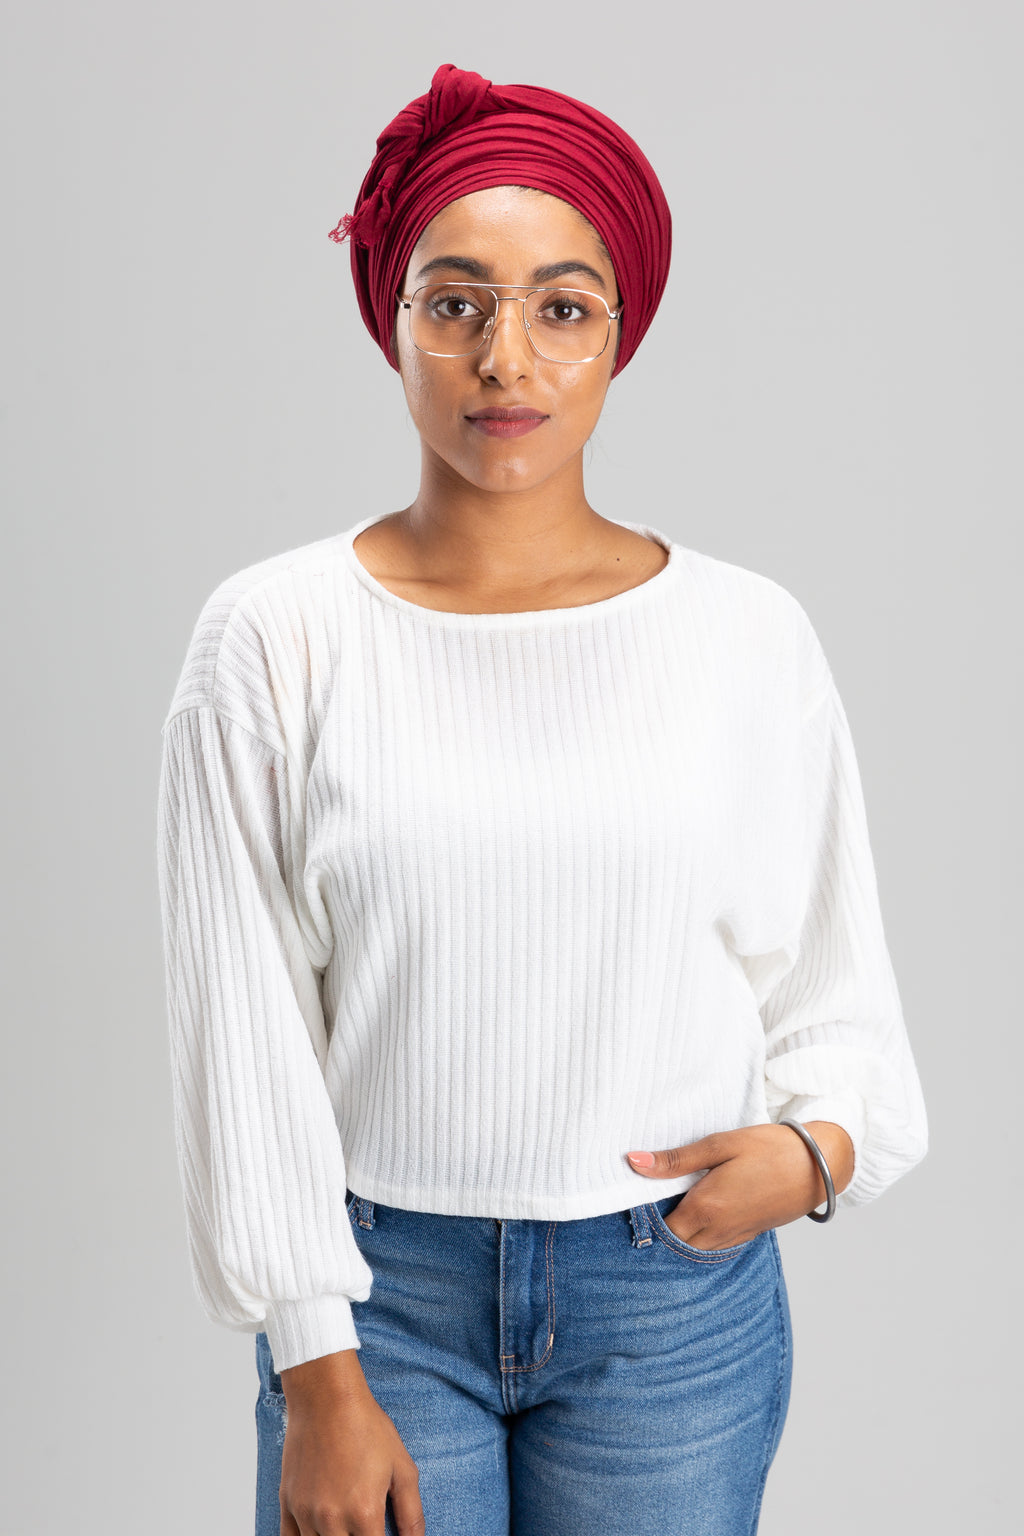 Sikh Woman Wearing a Maroon Turban Keski